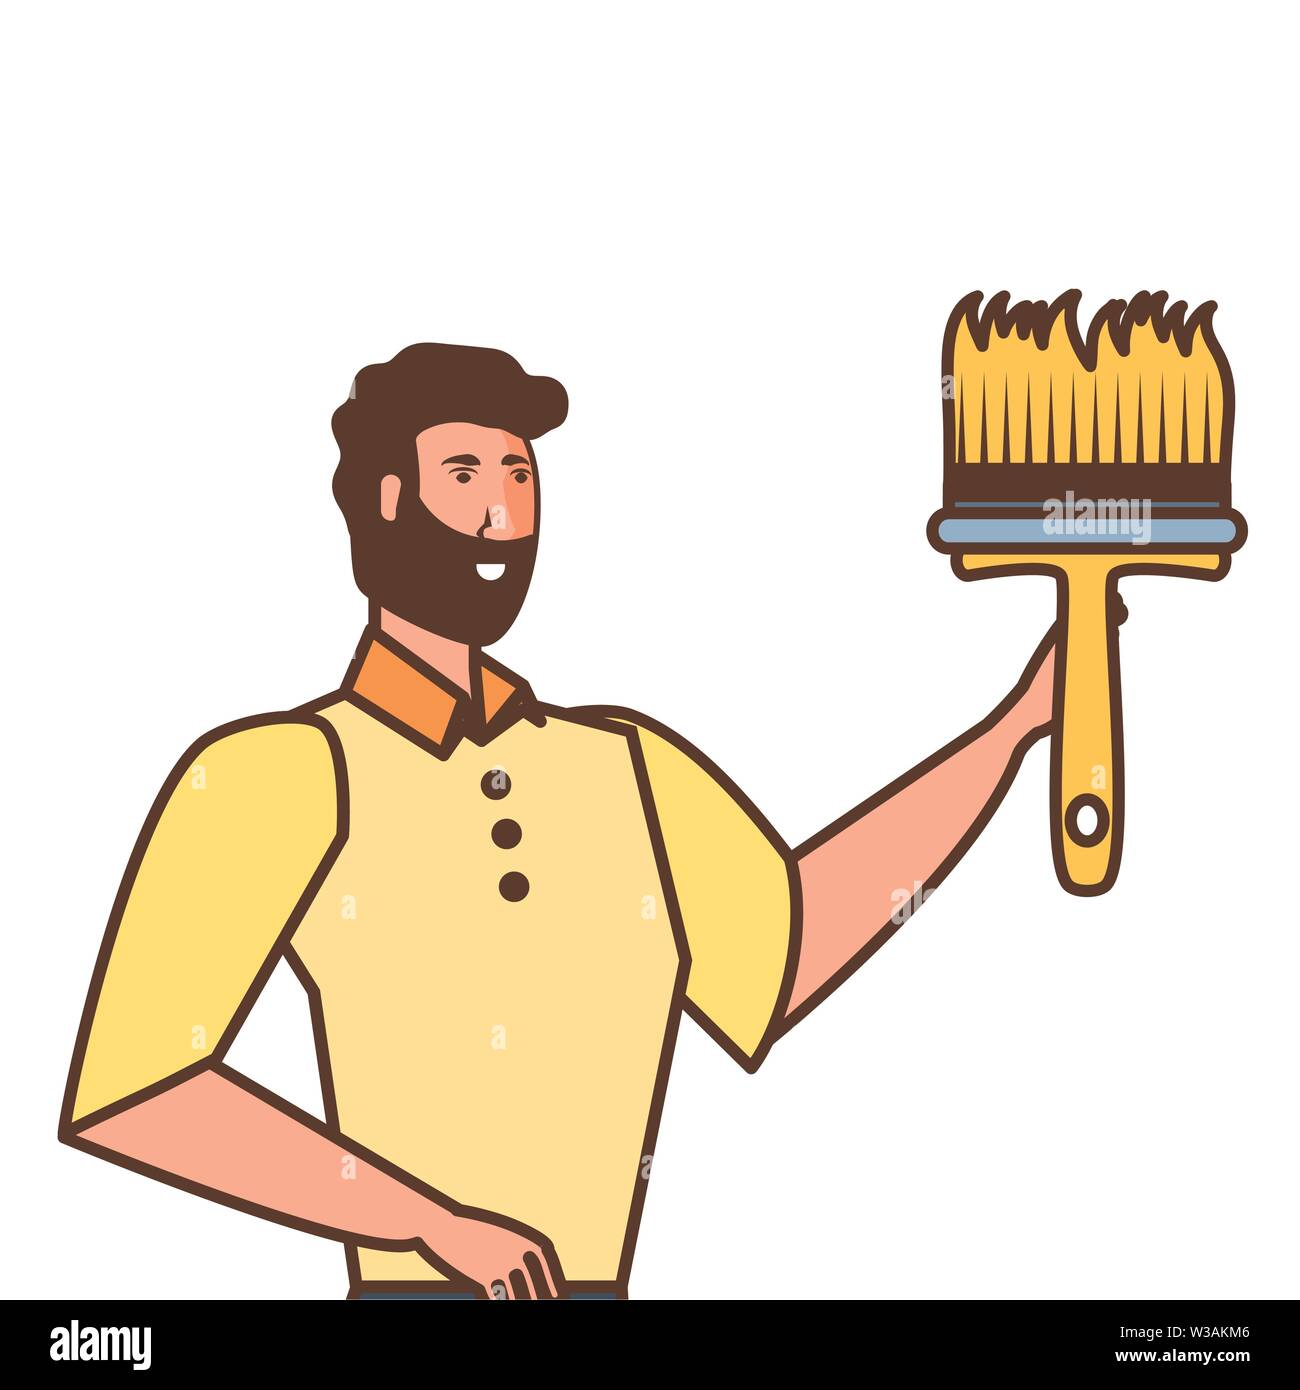 worker construction man with paint brush vector illustration design - Stock Image